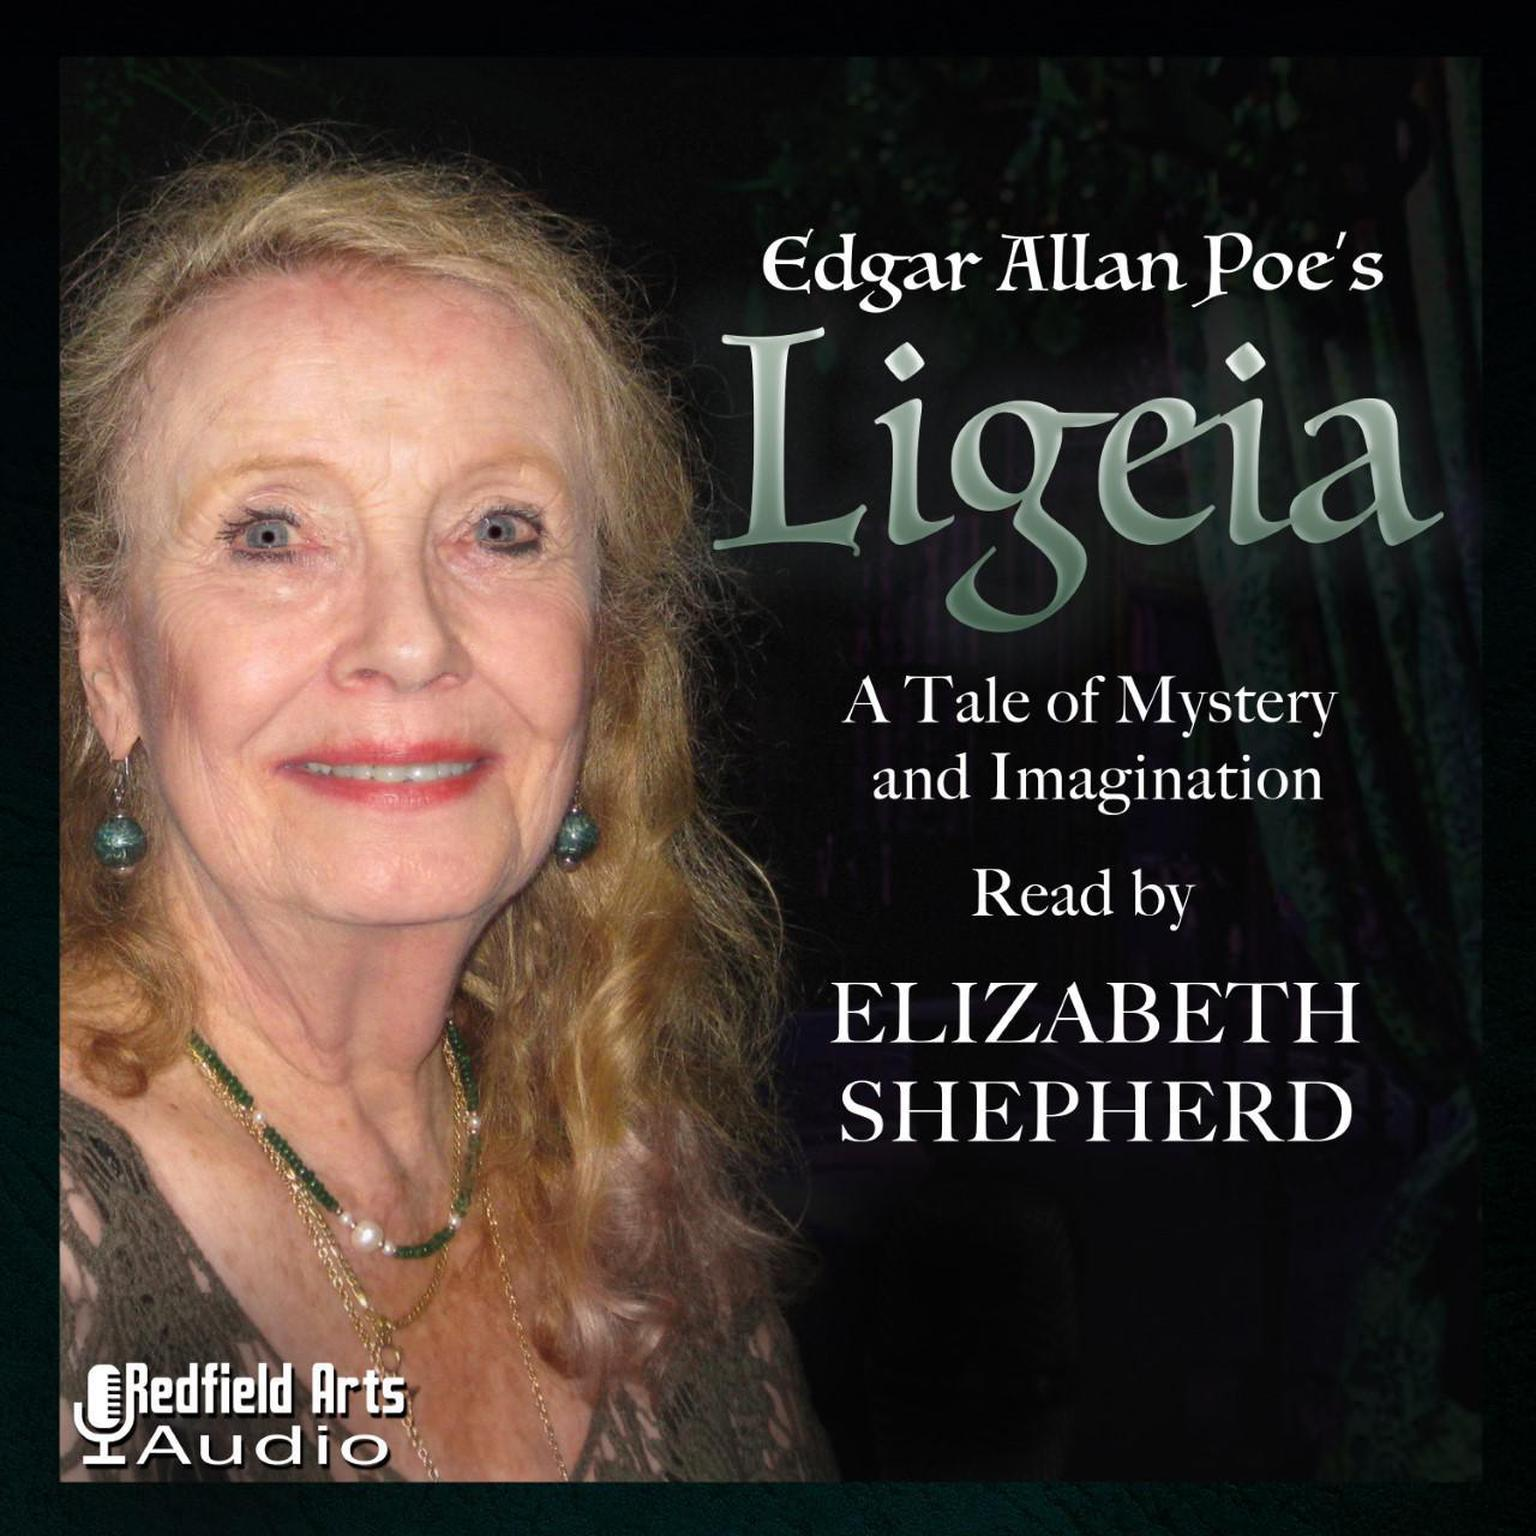 Printable Edgar Allan Poe's Ligeia: A Tale of Mystery and Imagination Audiobook Cover Art